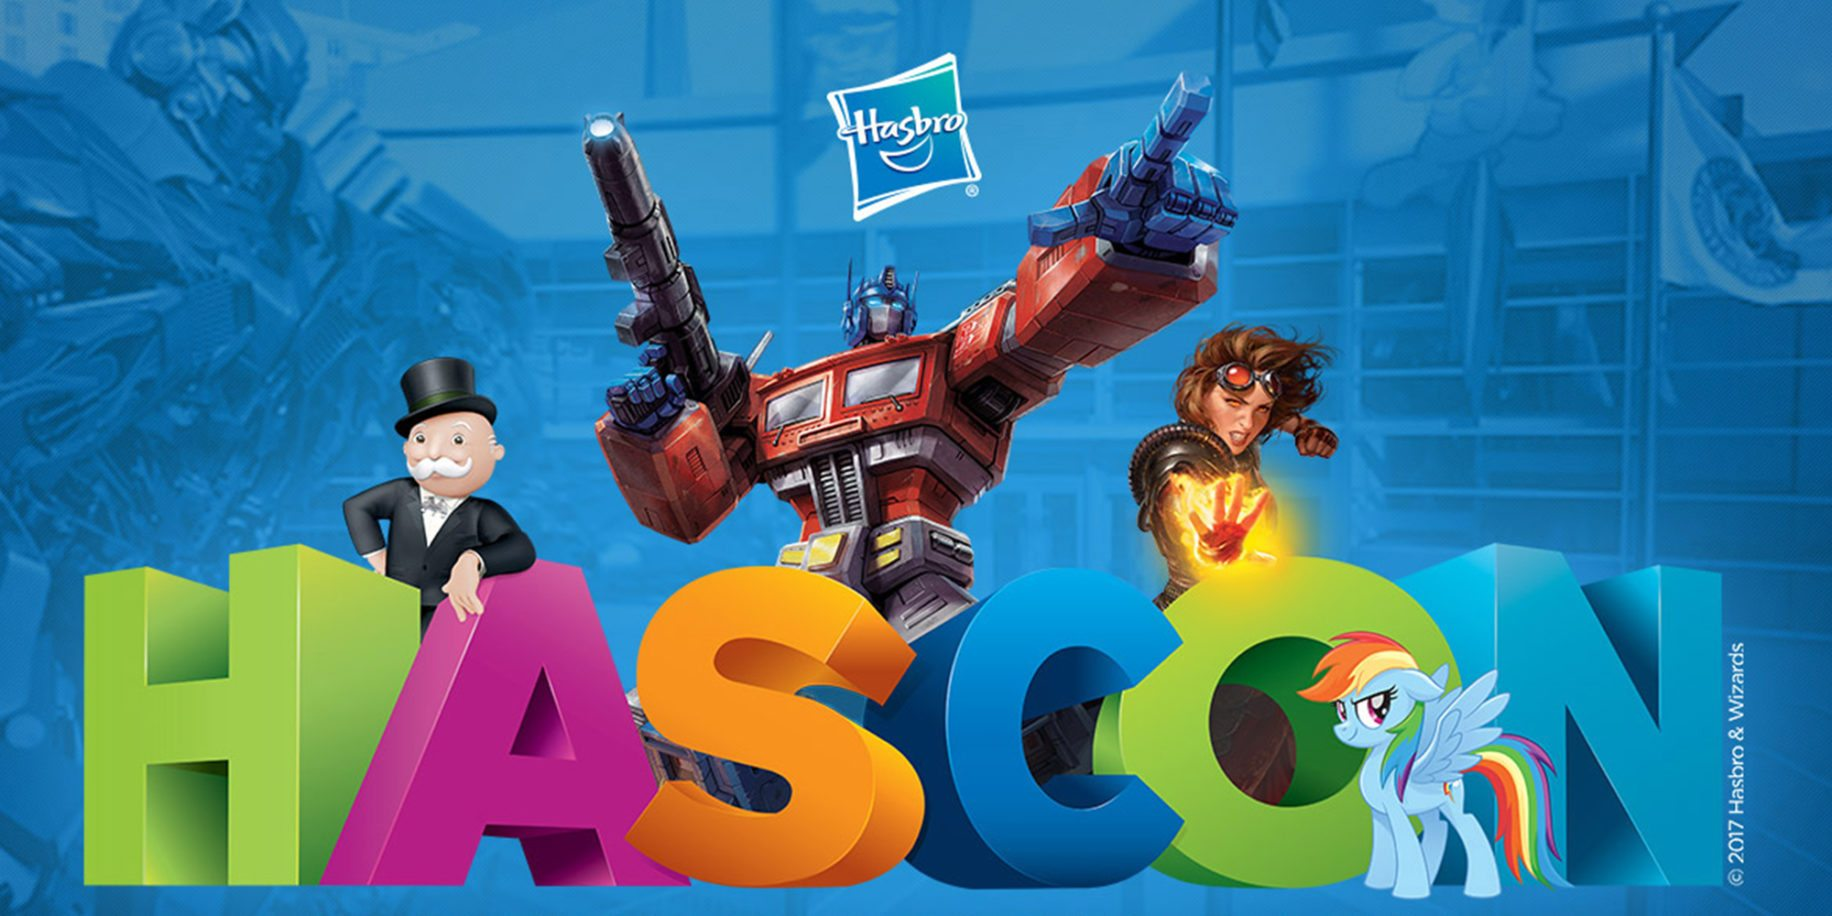 10 Best Bets of Hascon: 'D&D,' My Little Pony, 'Star Wars,' Transformers, and More